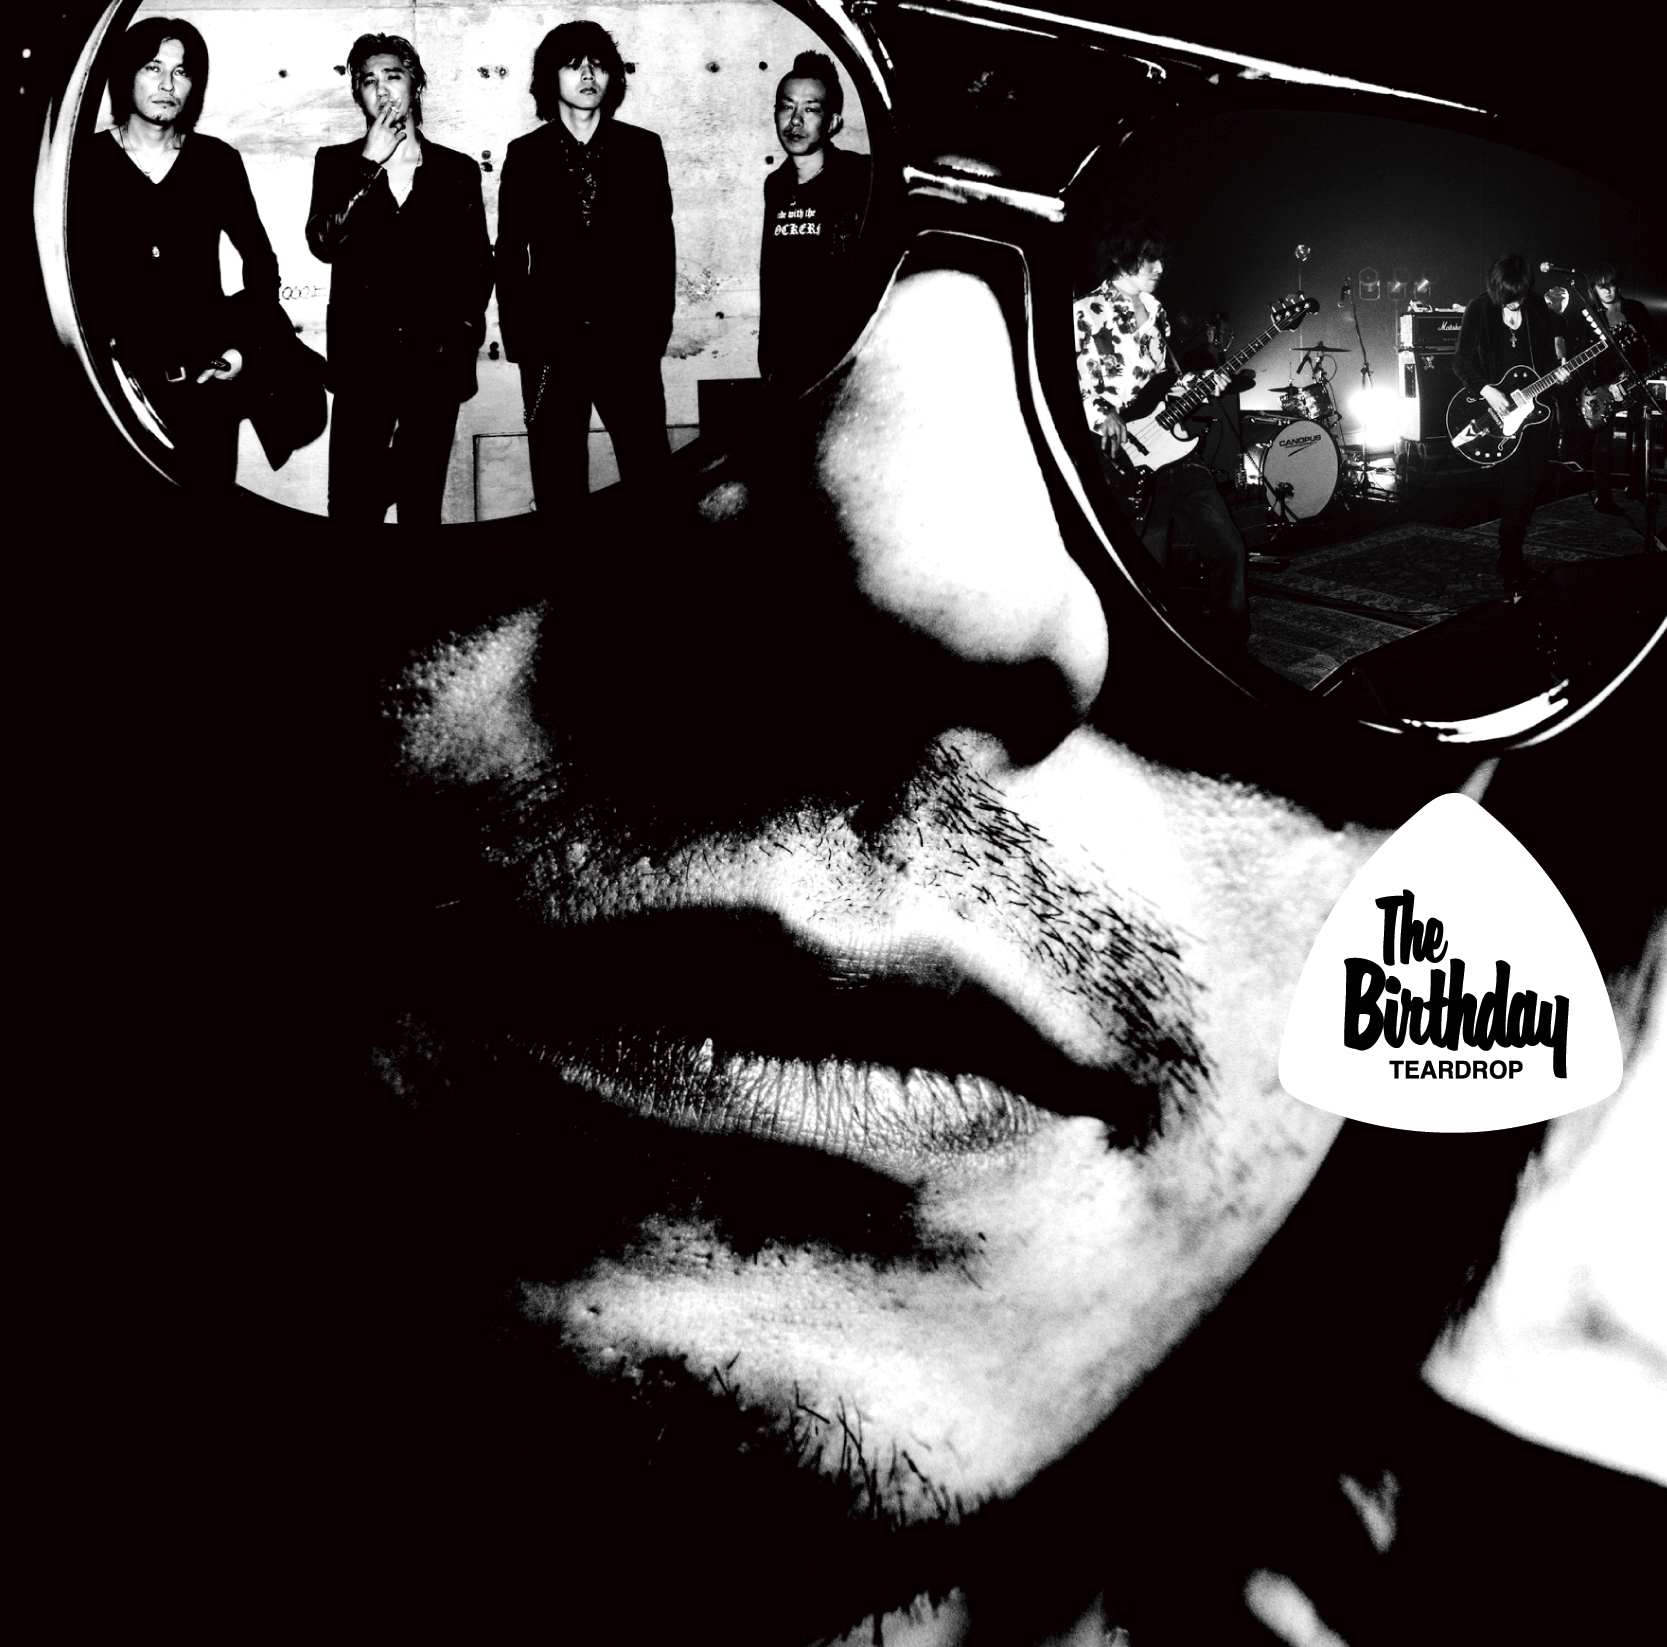 The Birthday 「TEARDROP」